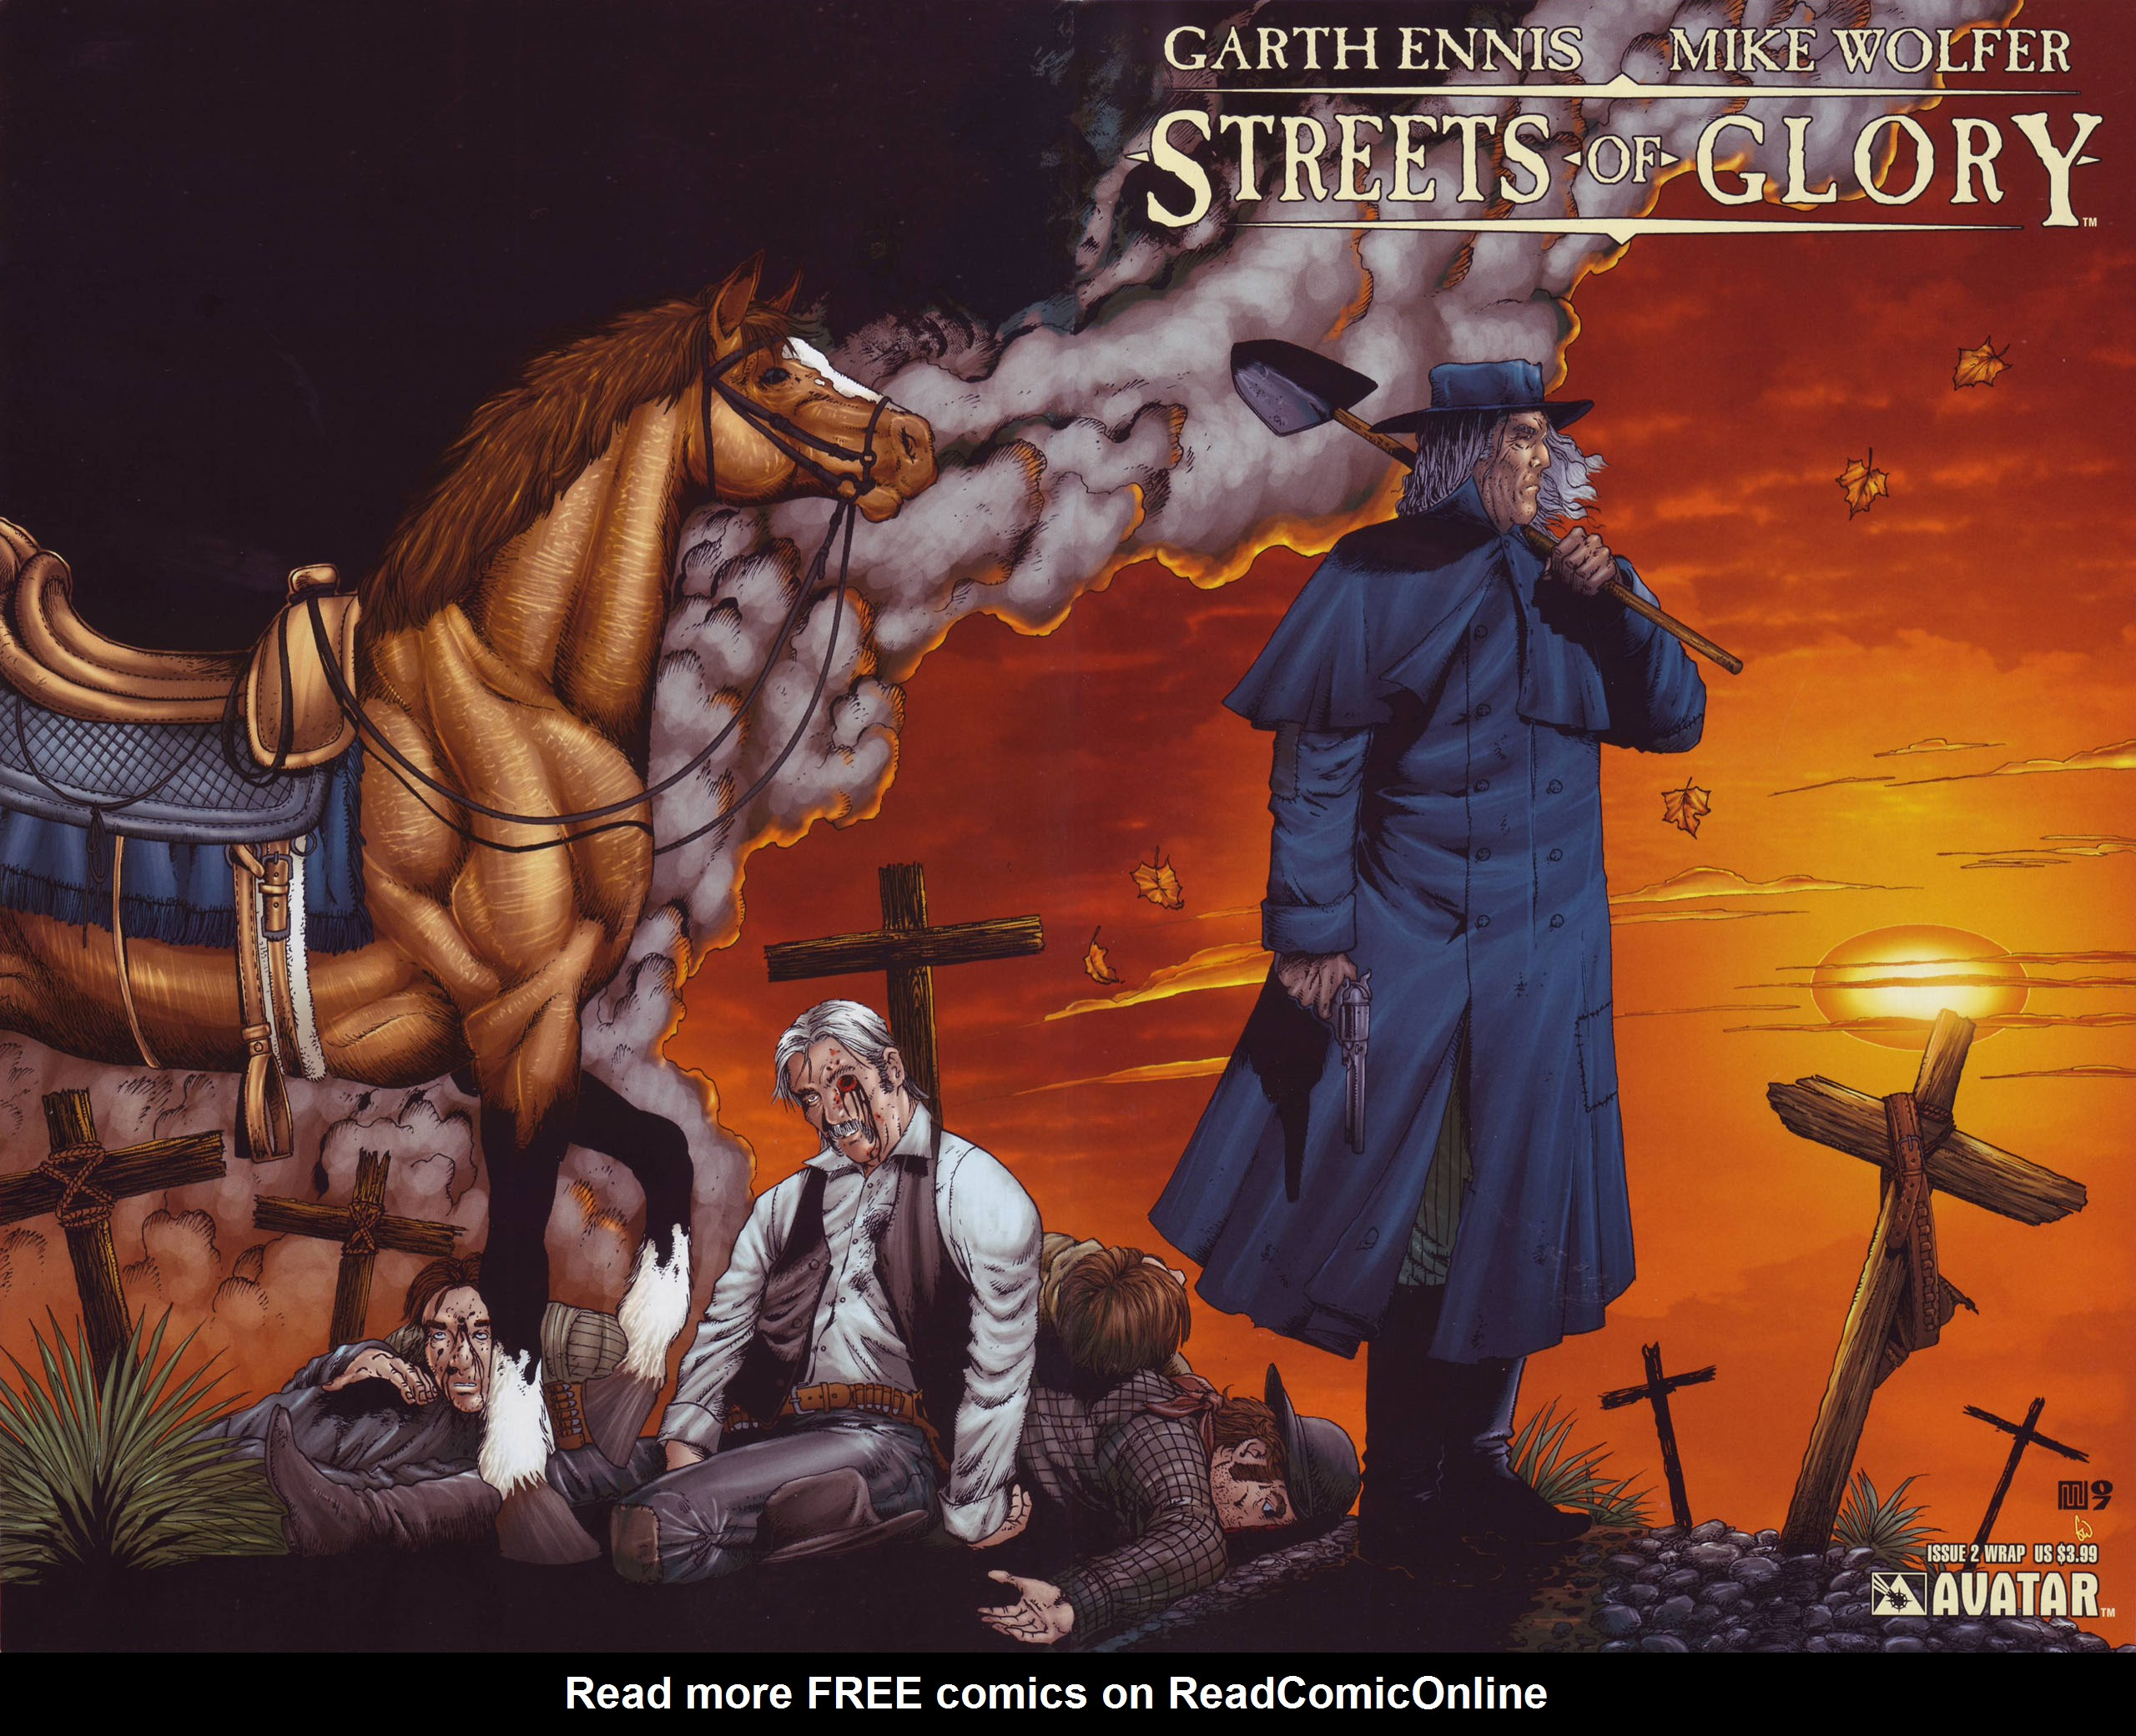 Read online Garth Ennis' Streets of Glory comic -  Issue #2 - 1